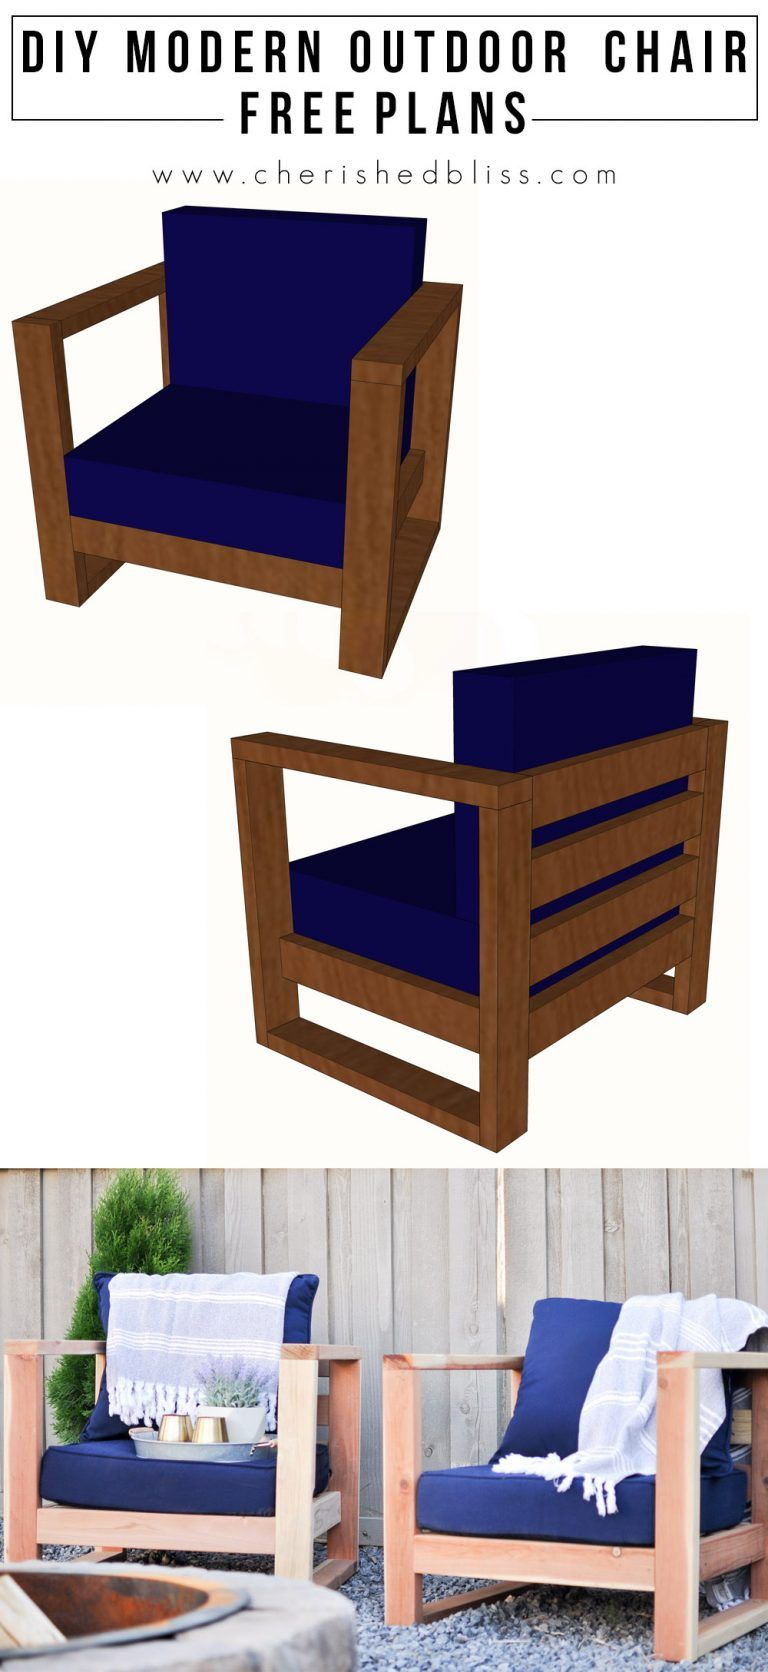 Diy Modern Outdoor Chair Free Plans Biz Modern Outdoor